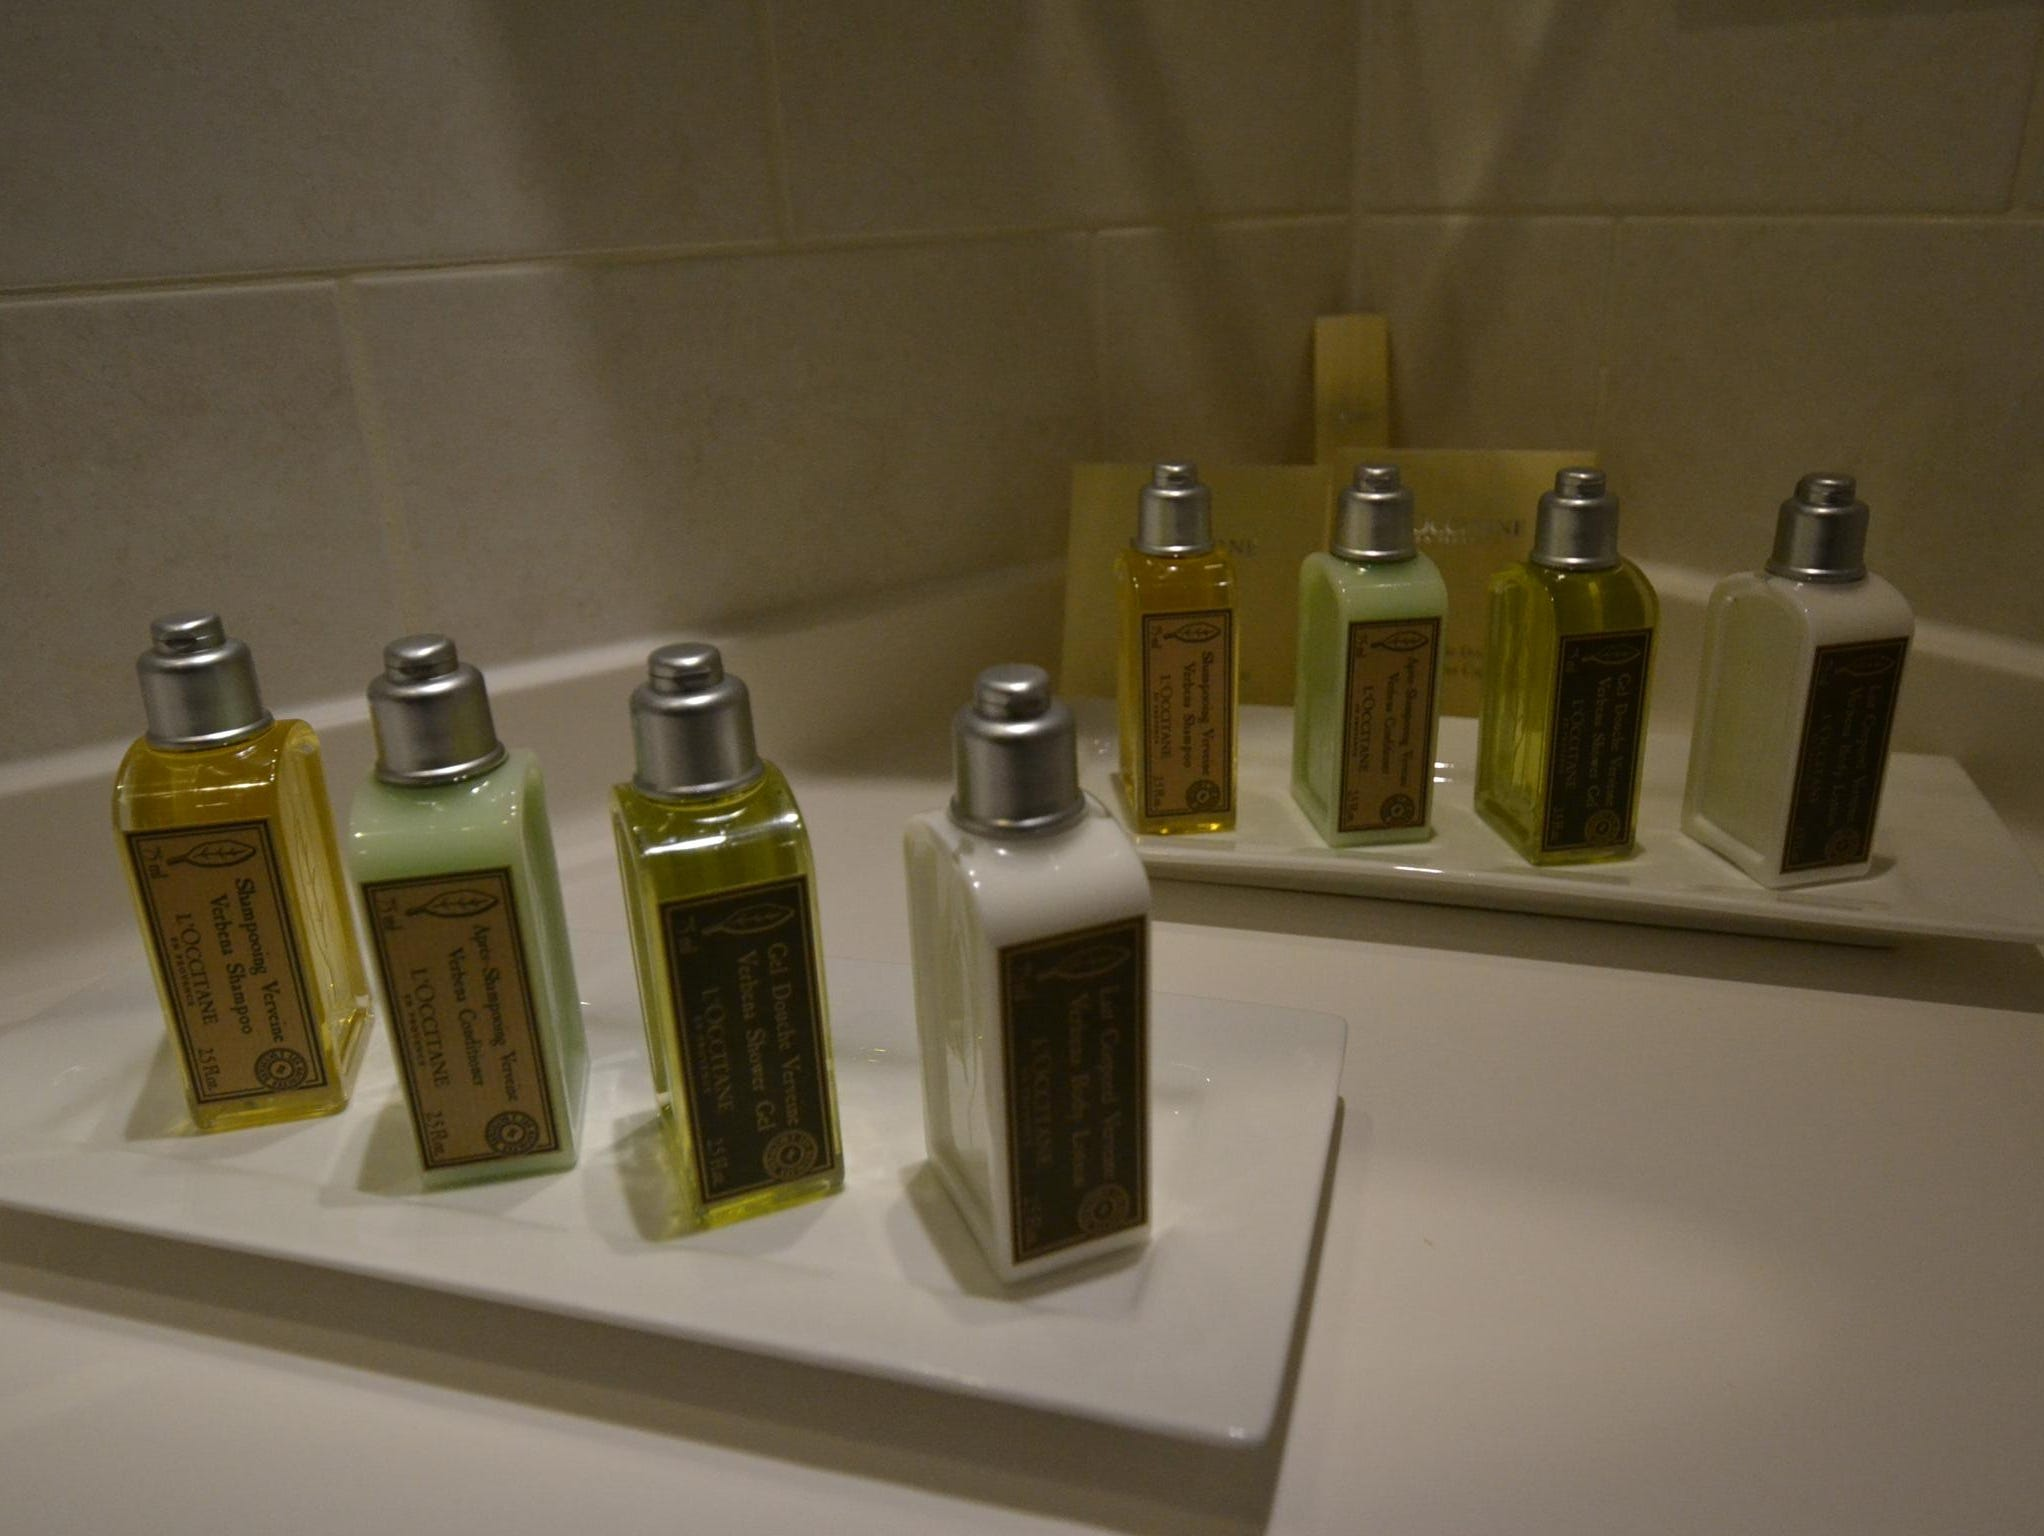 All cabins on the River Discovery II are stocked with L'Occitane bathroom products.